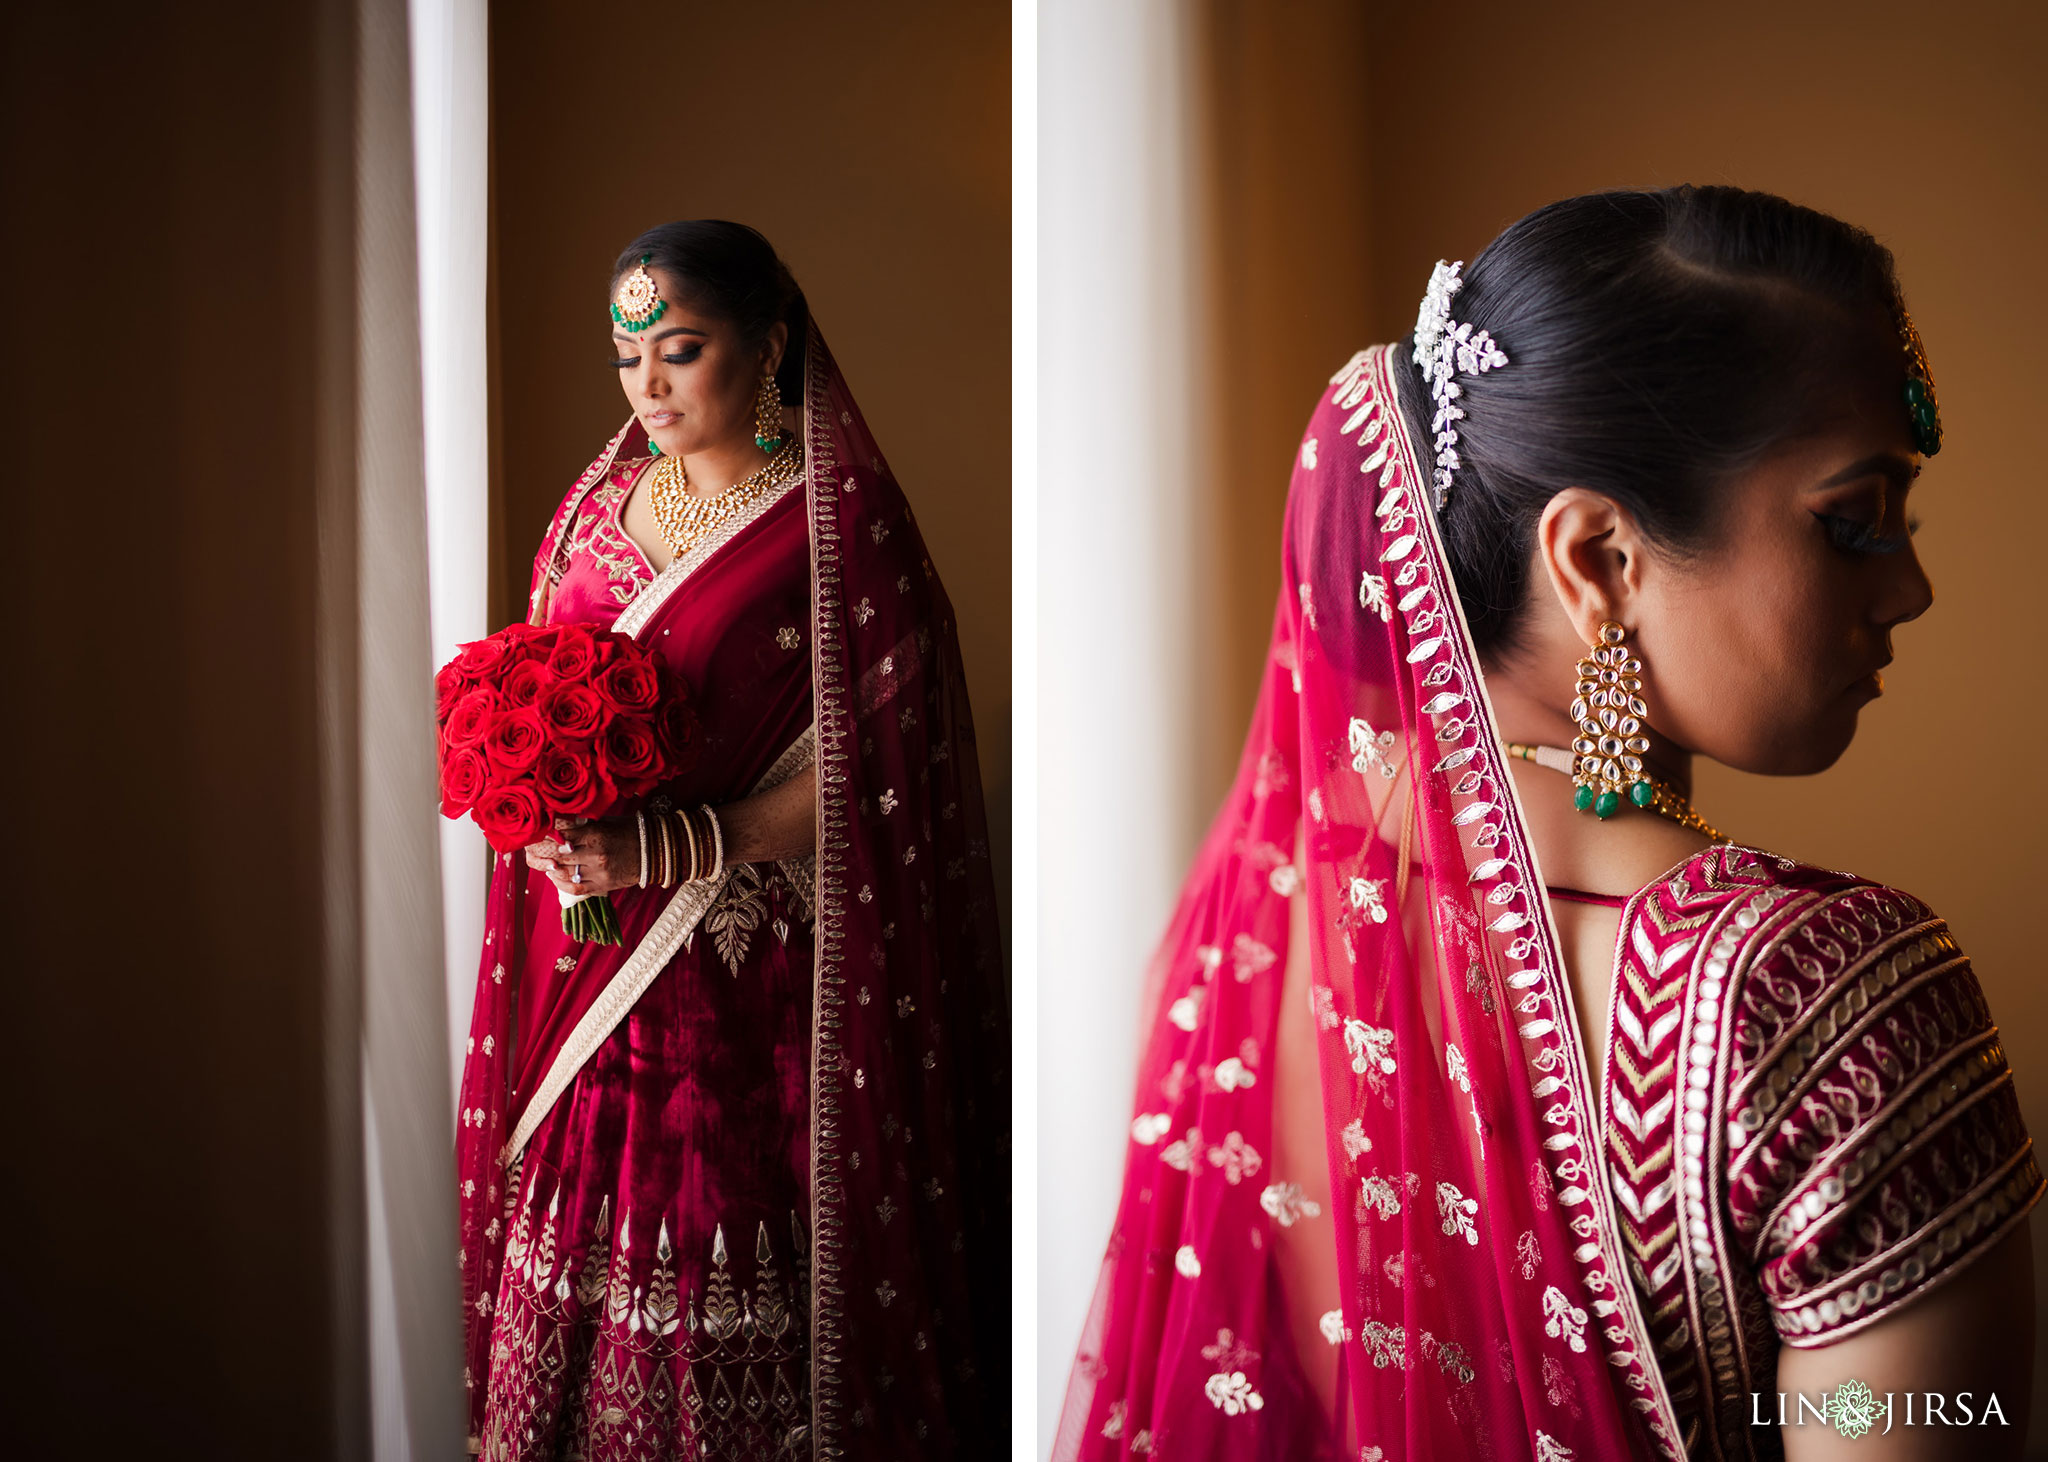 006 marriott santa clara indian wedding photography